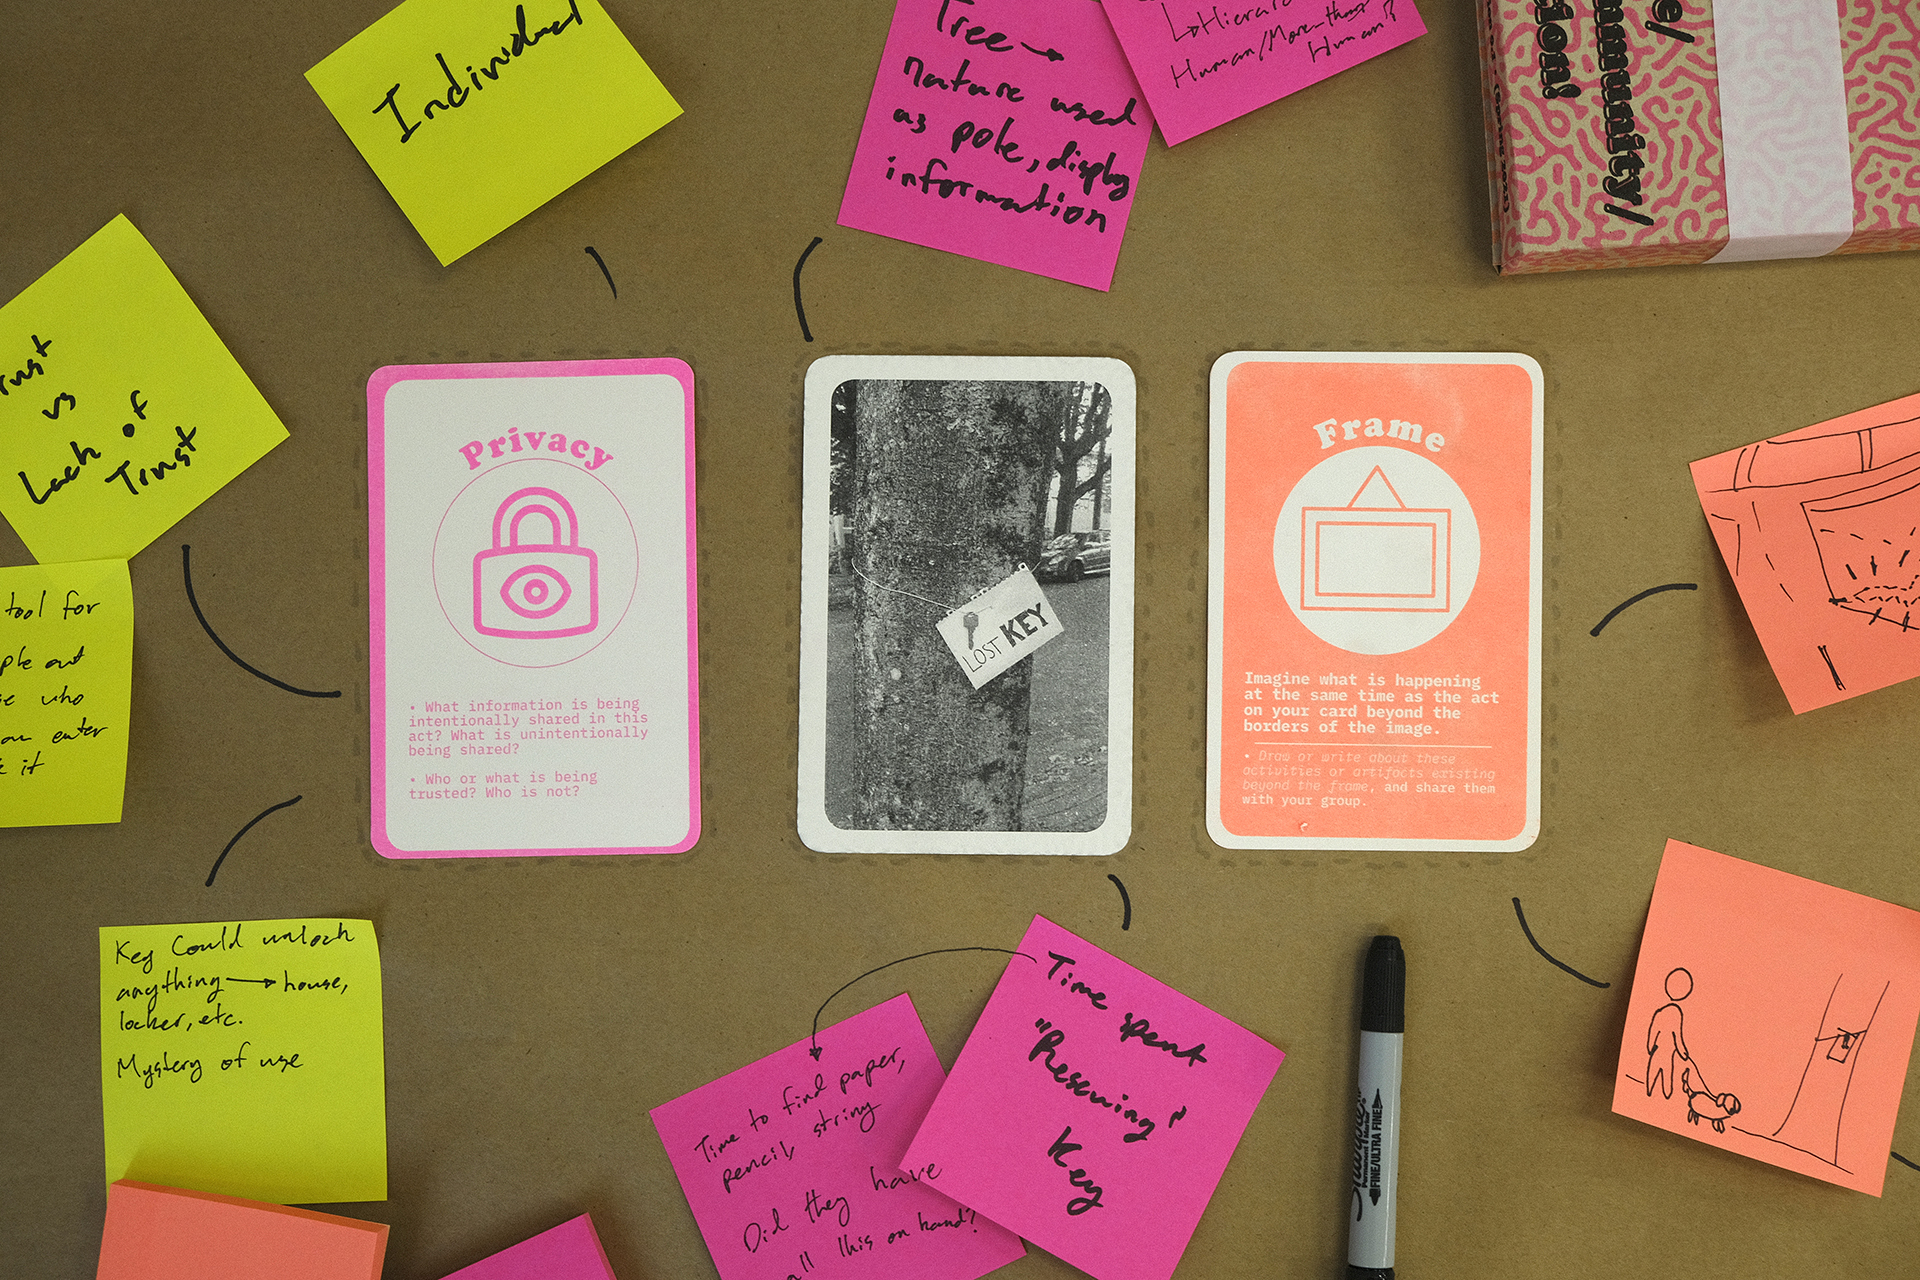 Three rectangular cards; one fluorescent pink, one black, and one fluorescent orange; laid out across a brown table. The cards are surrounded by several brightly coloured sticky notes covered in handwriting, as well as a felt pen and a card box.